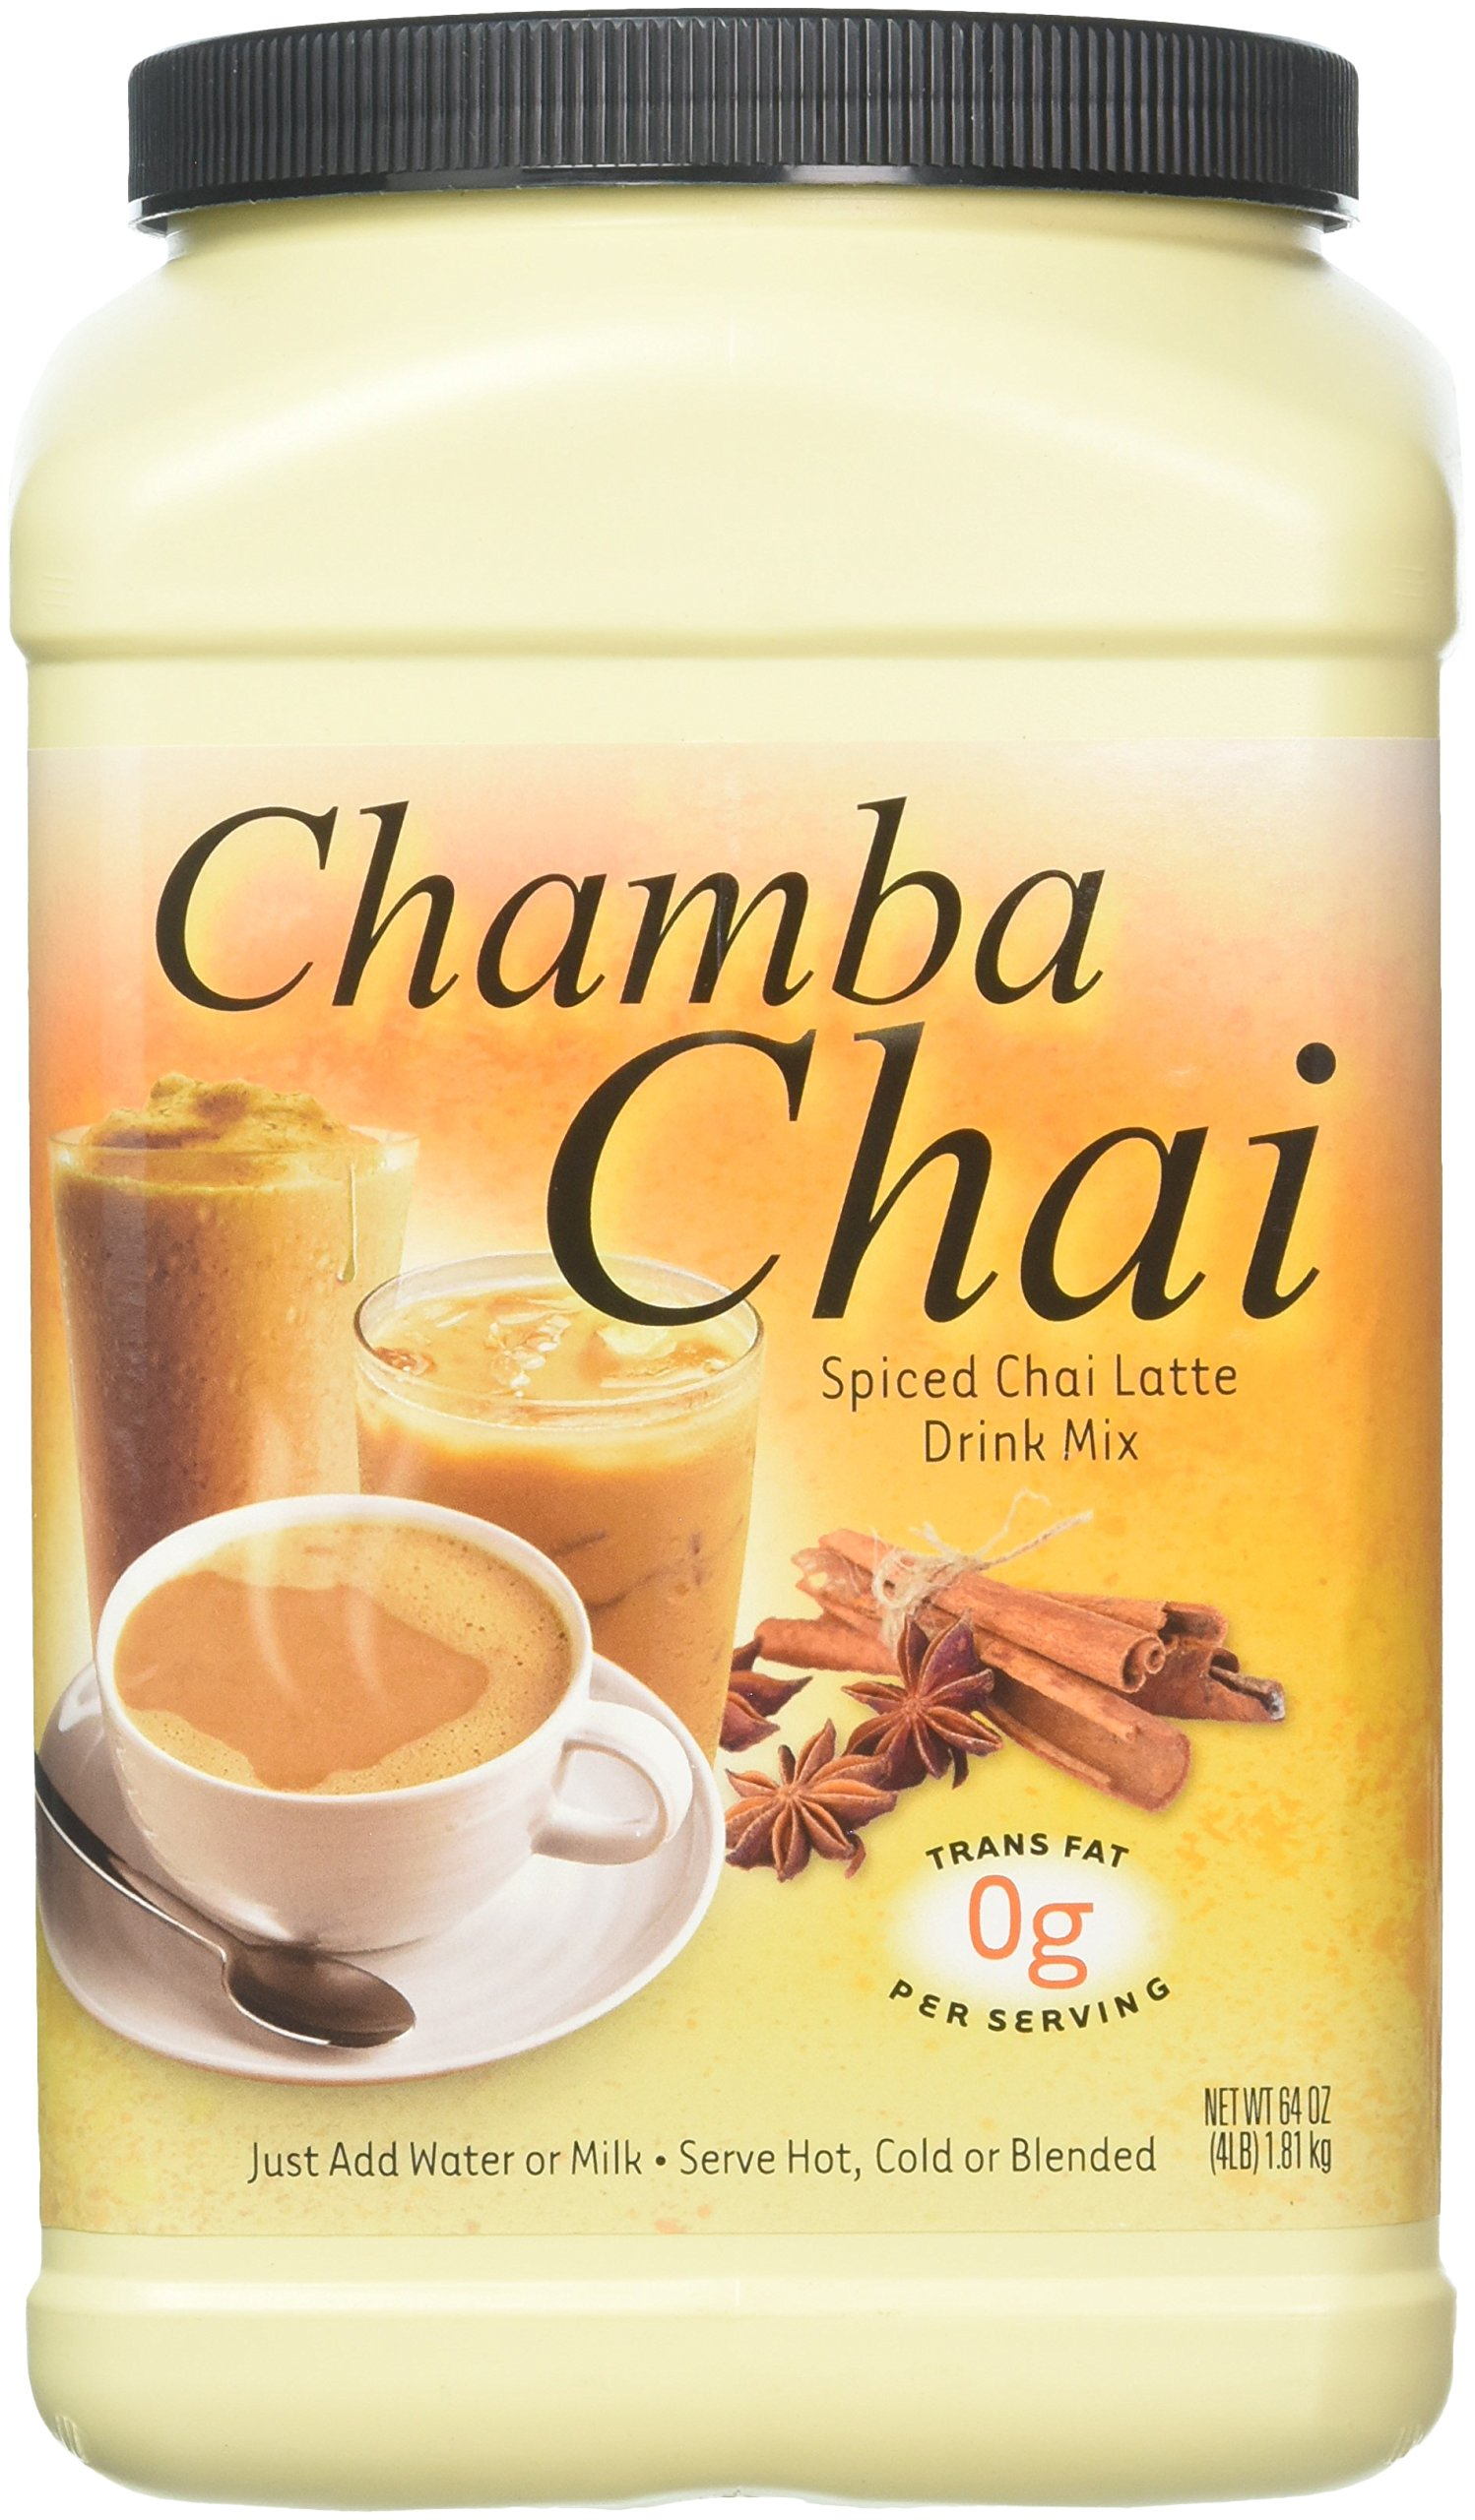 Big Train Chamba Chai Spiced Chai Latte, Two  4lb. Jugs by Chamba Chai Spiced Chai Latte